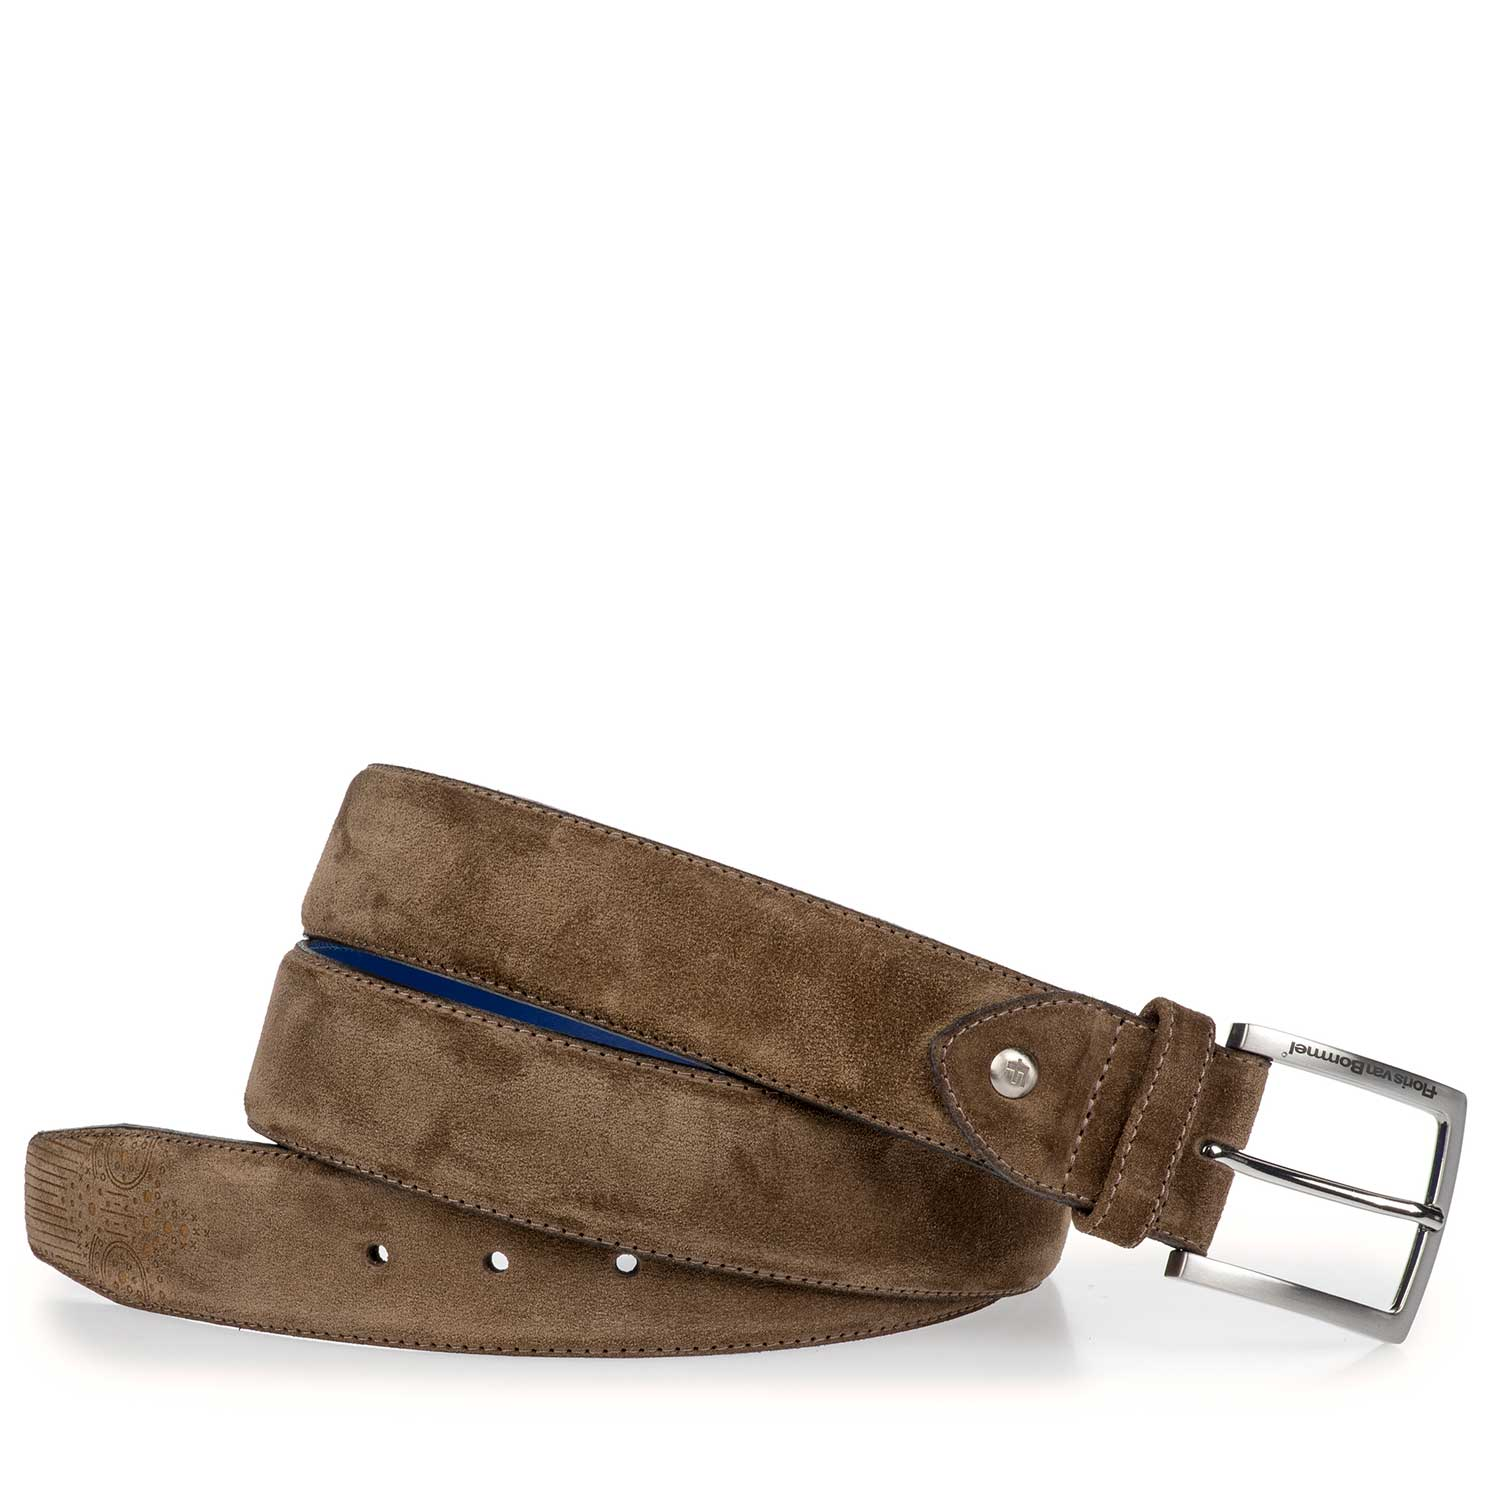 75185/04 - Taupe-coloured suede leather belt with brogue details